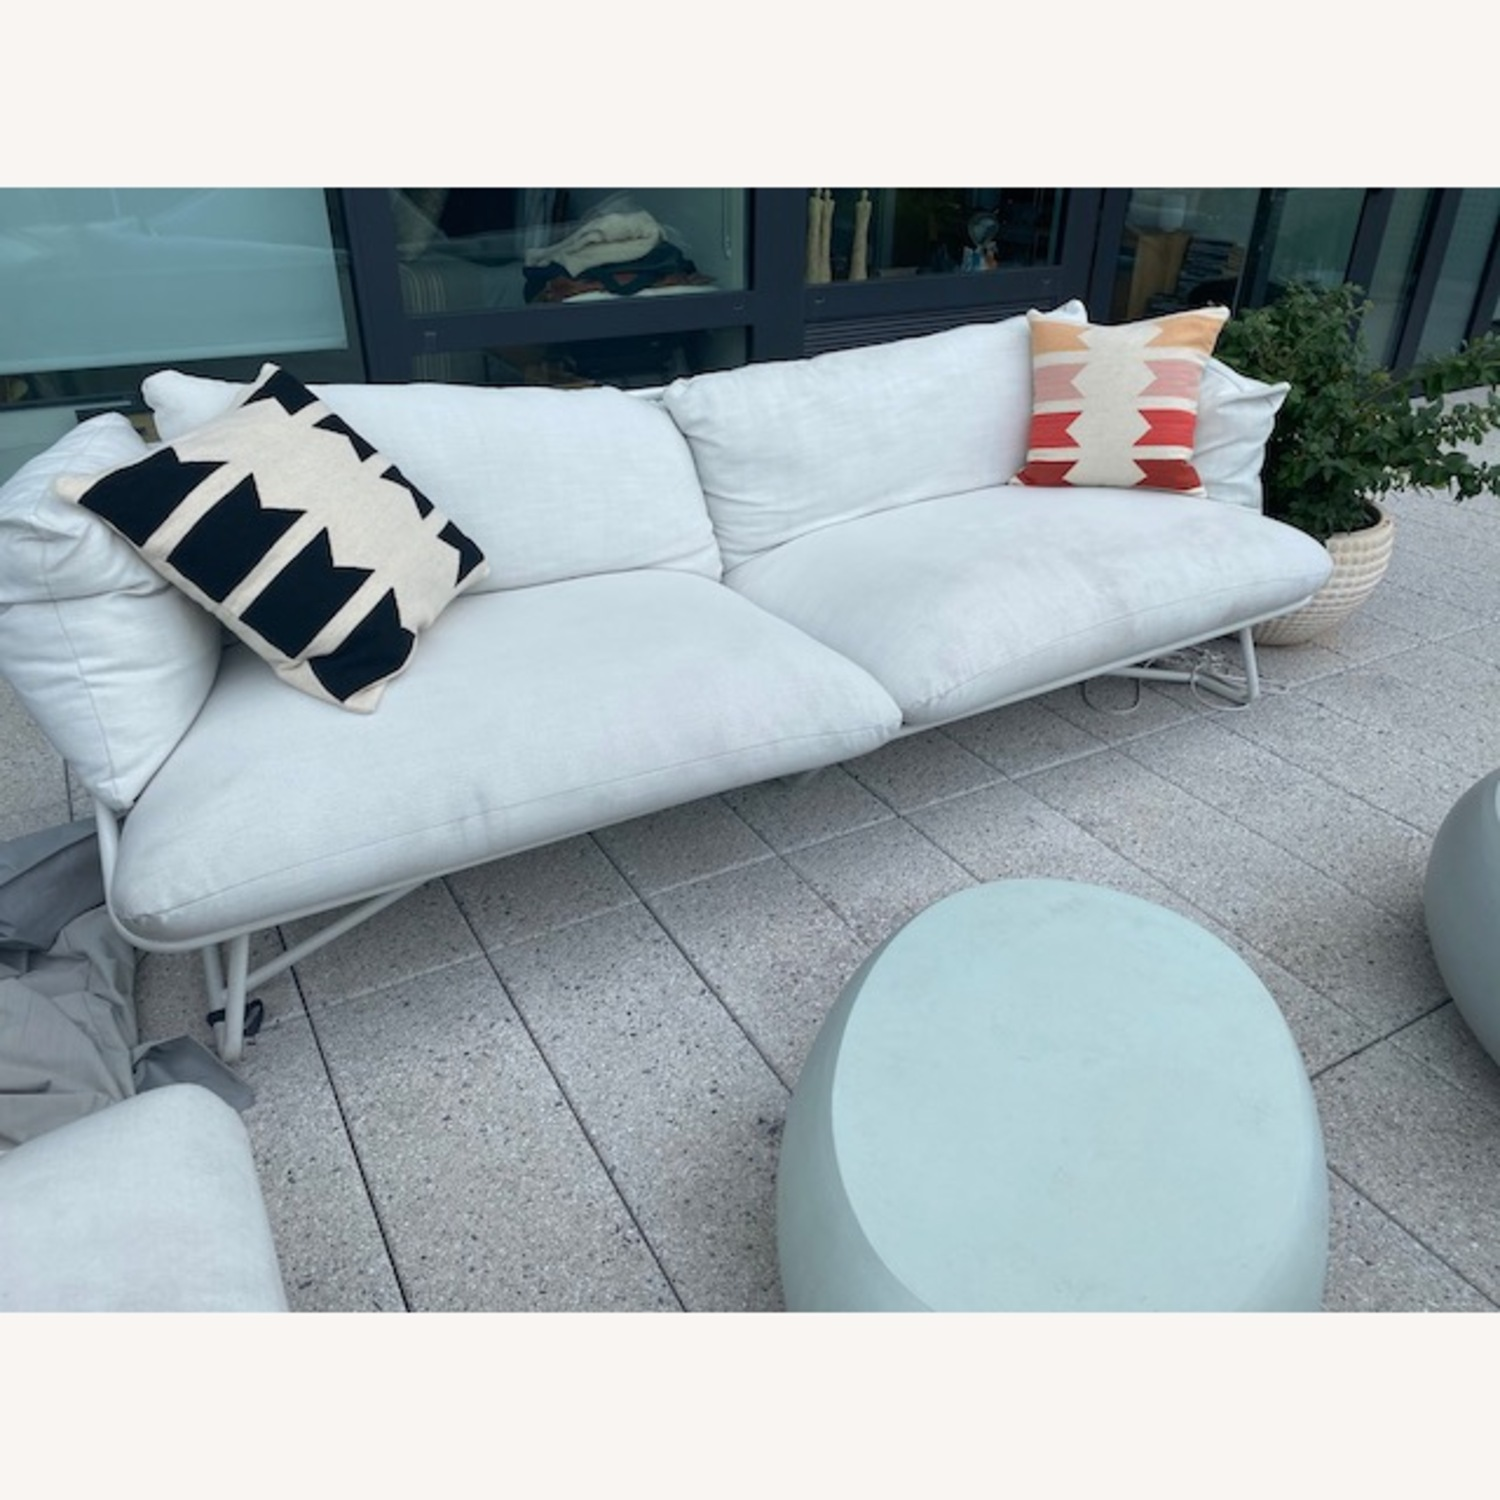 CB2 Fred Segal Outdoor Set - image-1